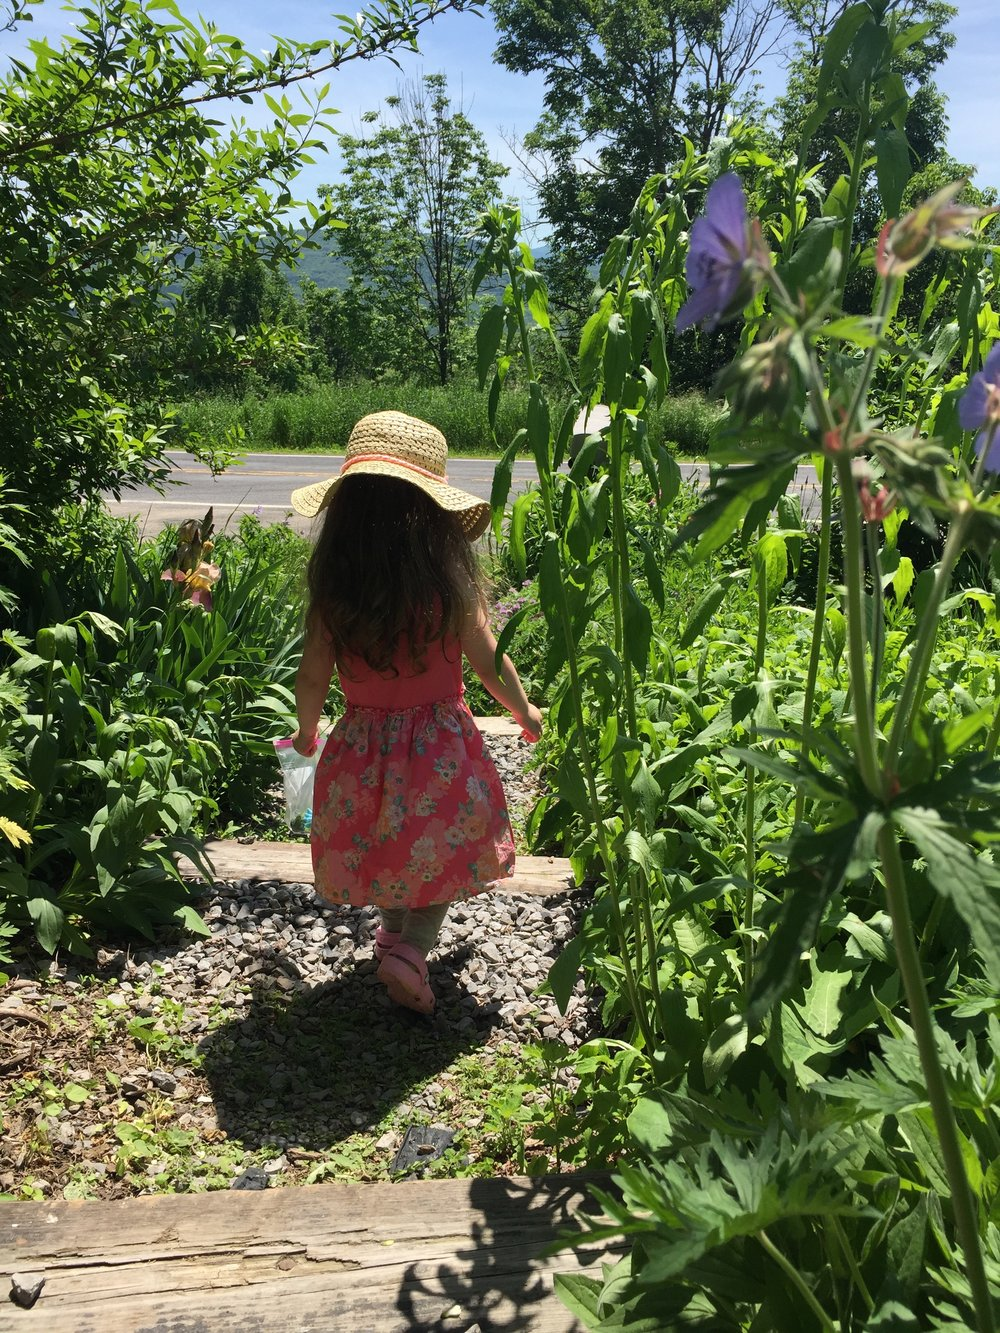 Toddler-tall flowers at Heather Ridge Farm